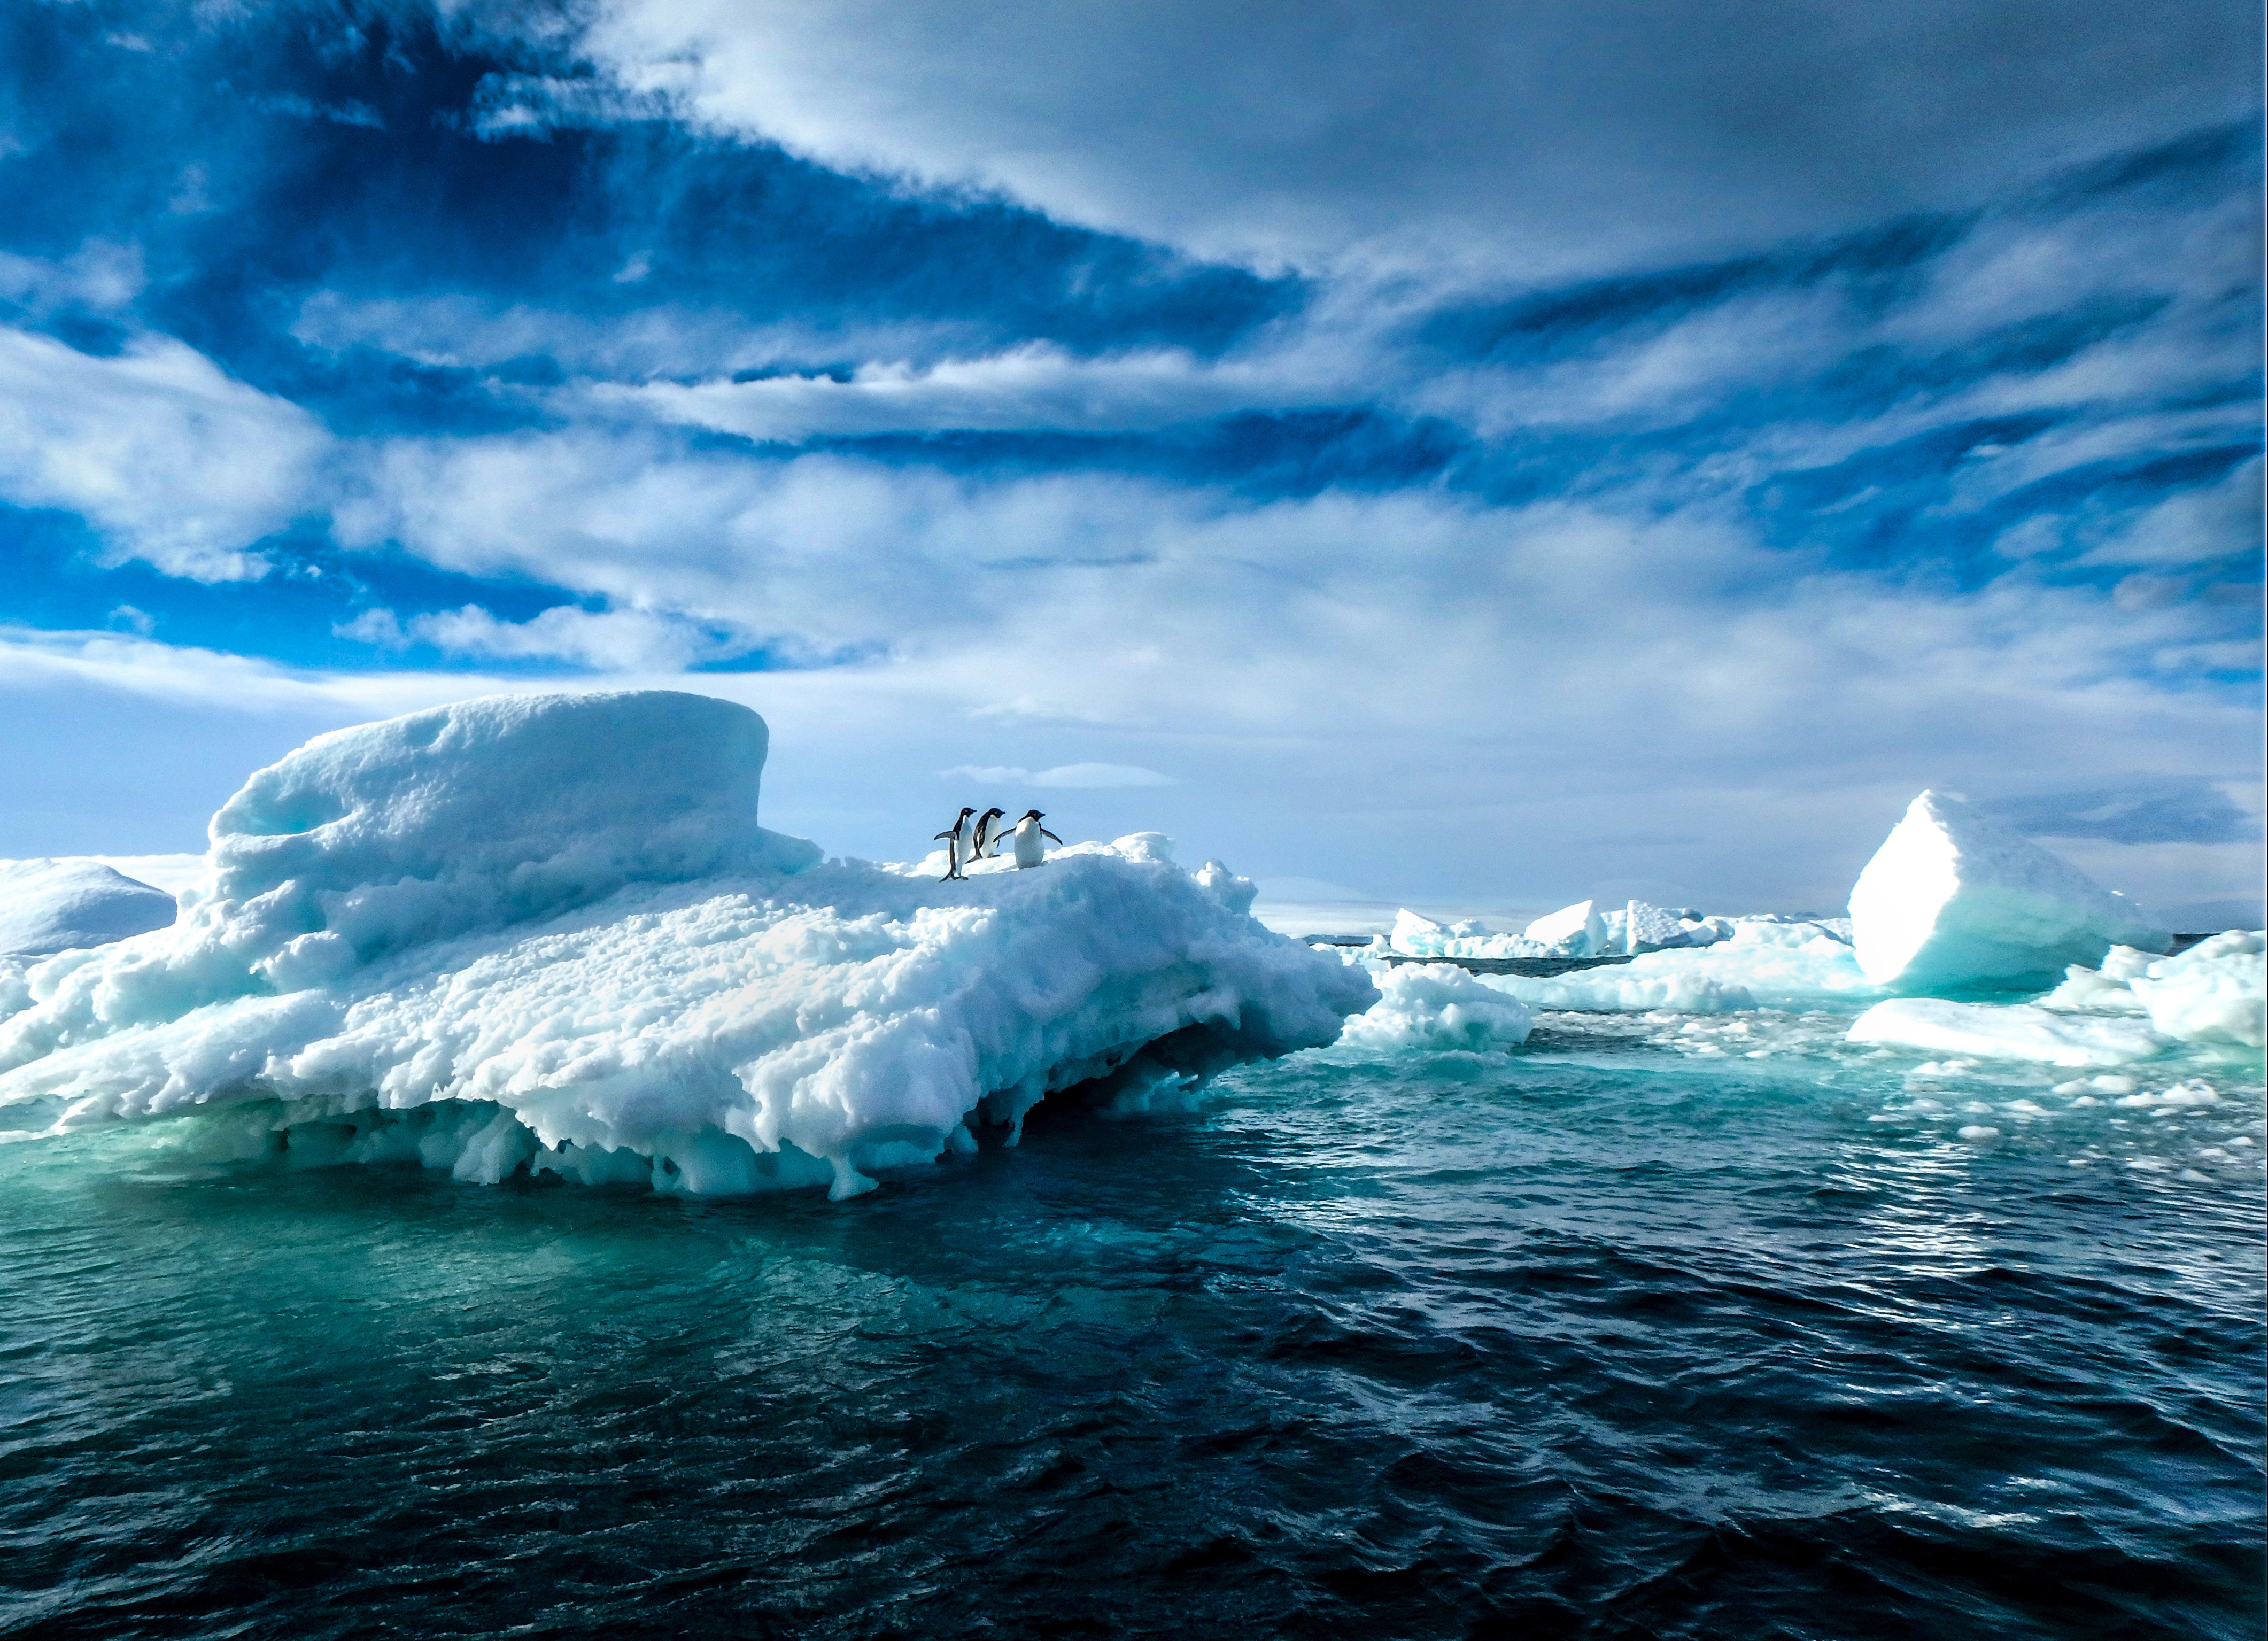 Katrina Zinger's award winning Penguins On Ice Antarctic photograph